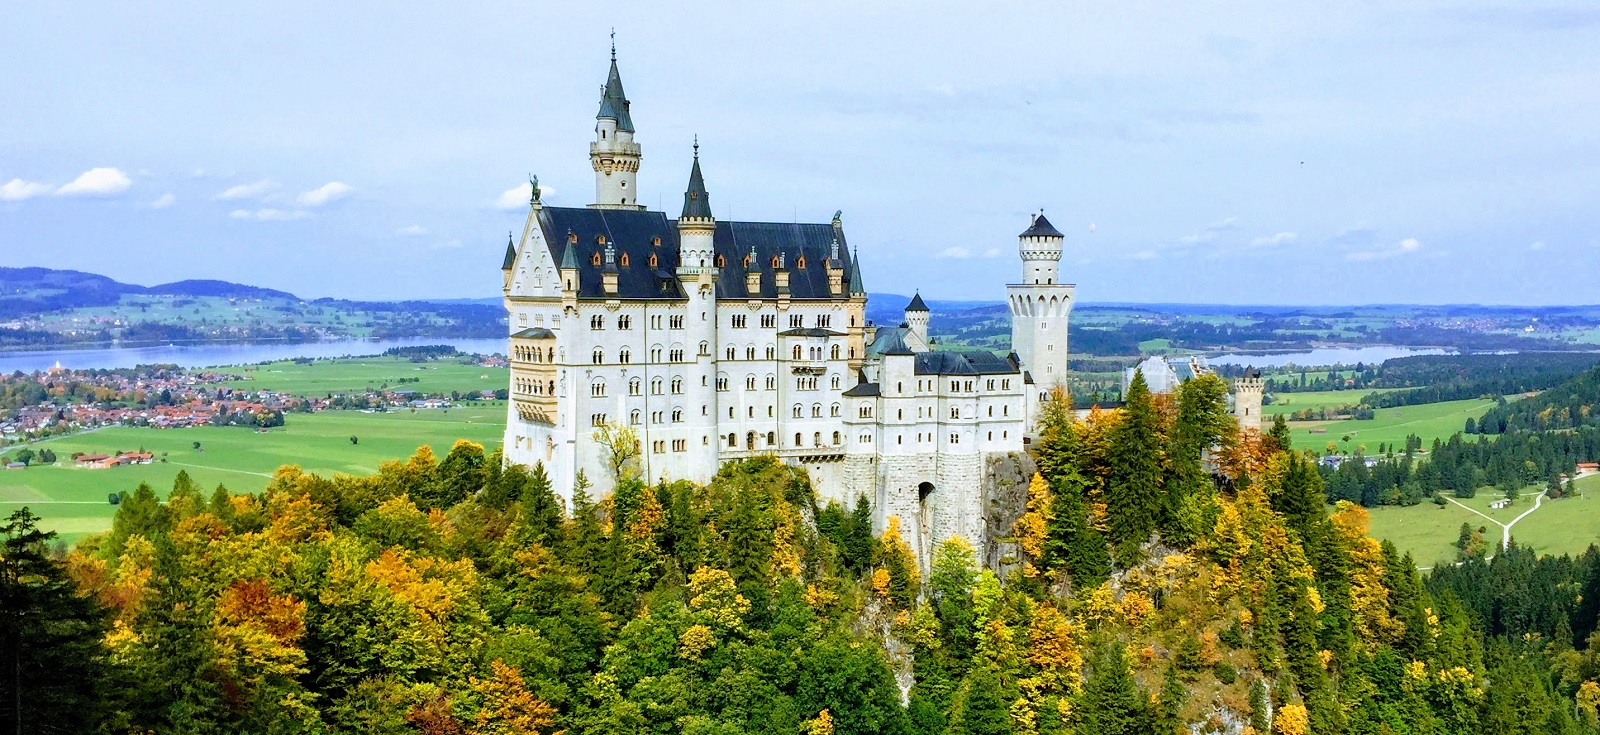 Fairytail Castle SwanstoneCastle #NeuschwansteinCastle Bavaria Germany